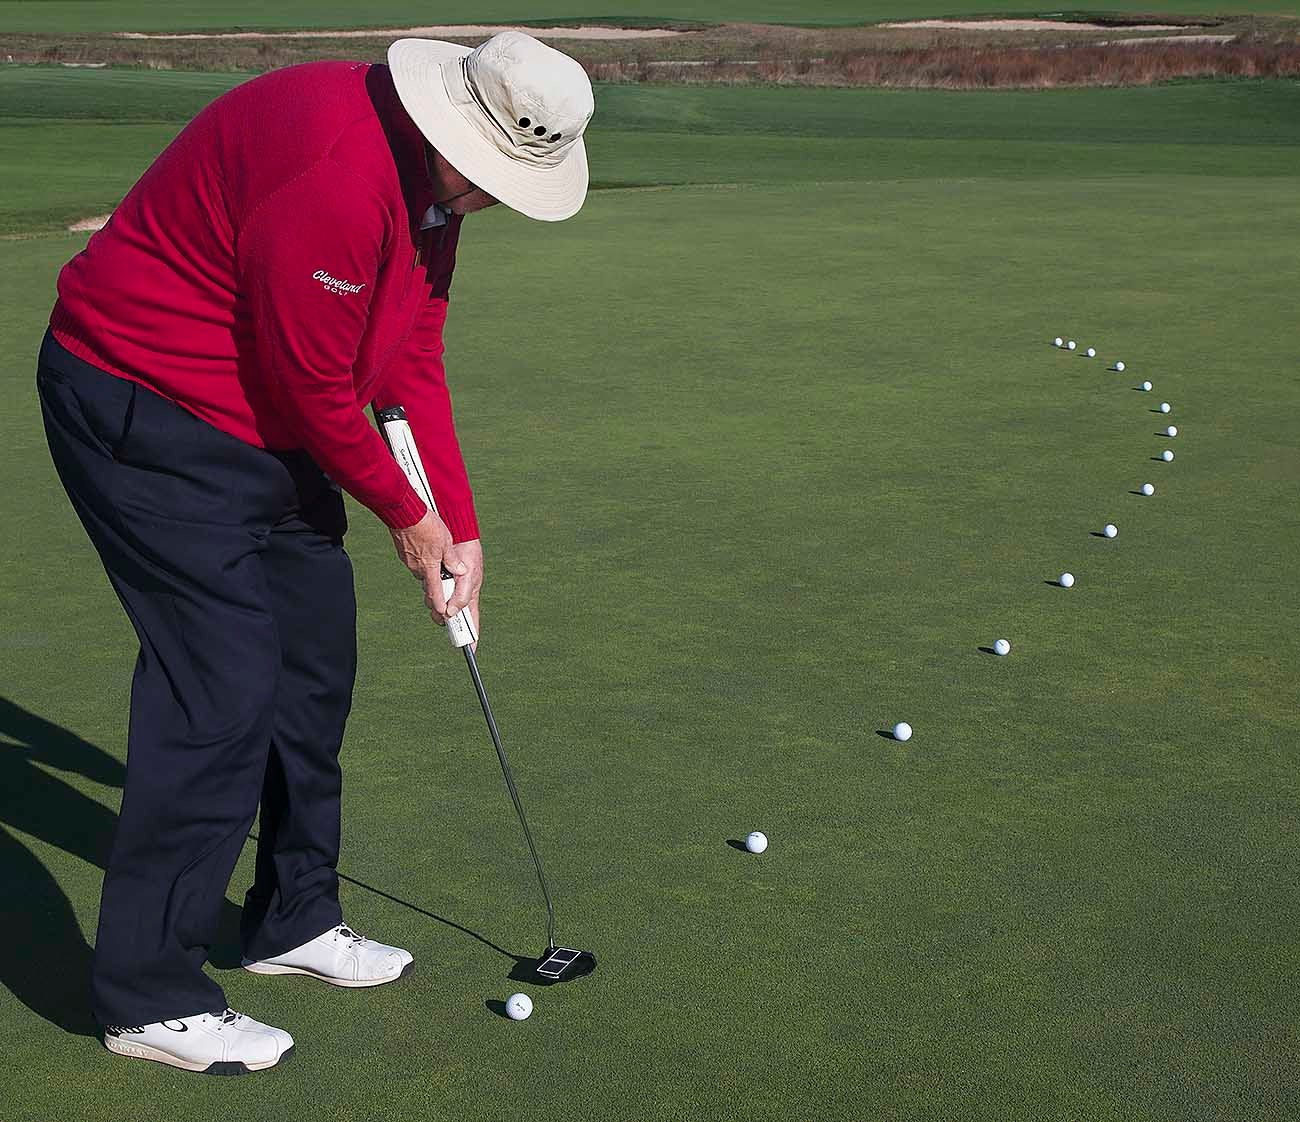 Dave Pelz, putting drill